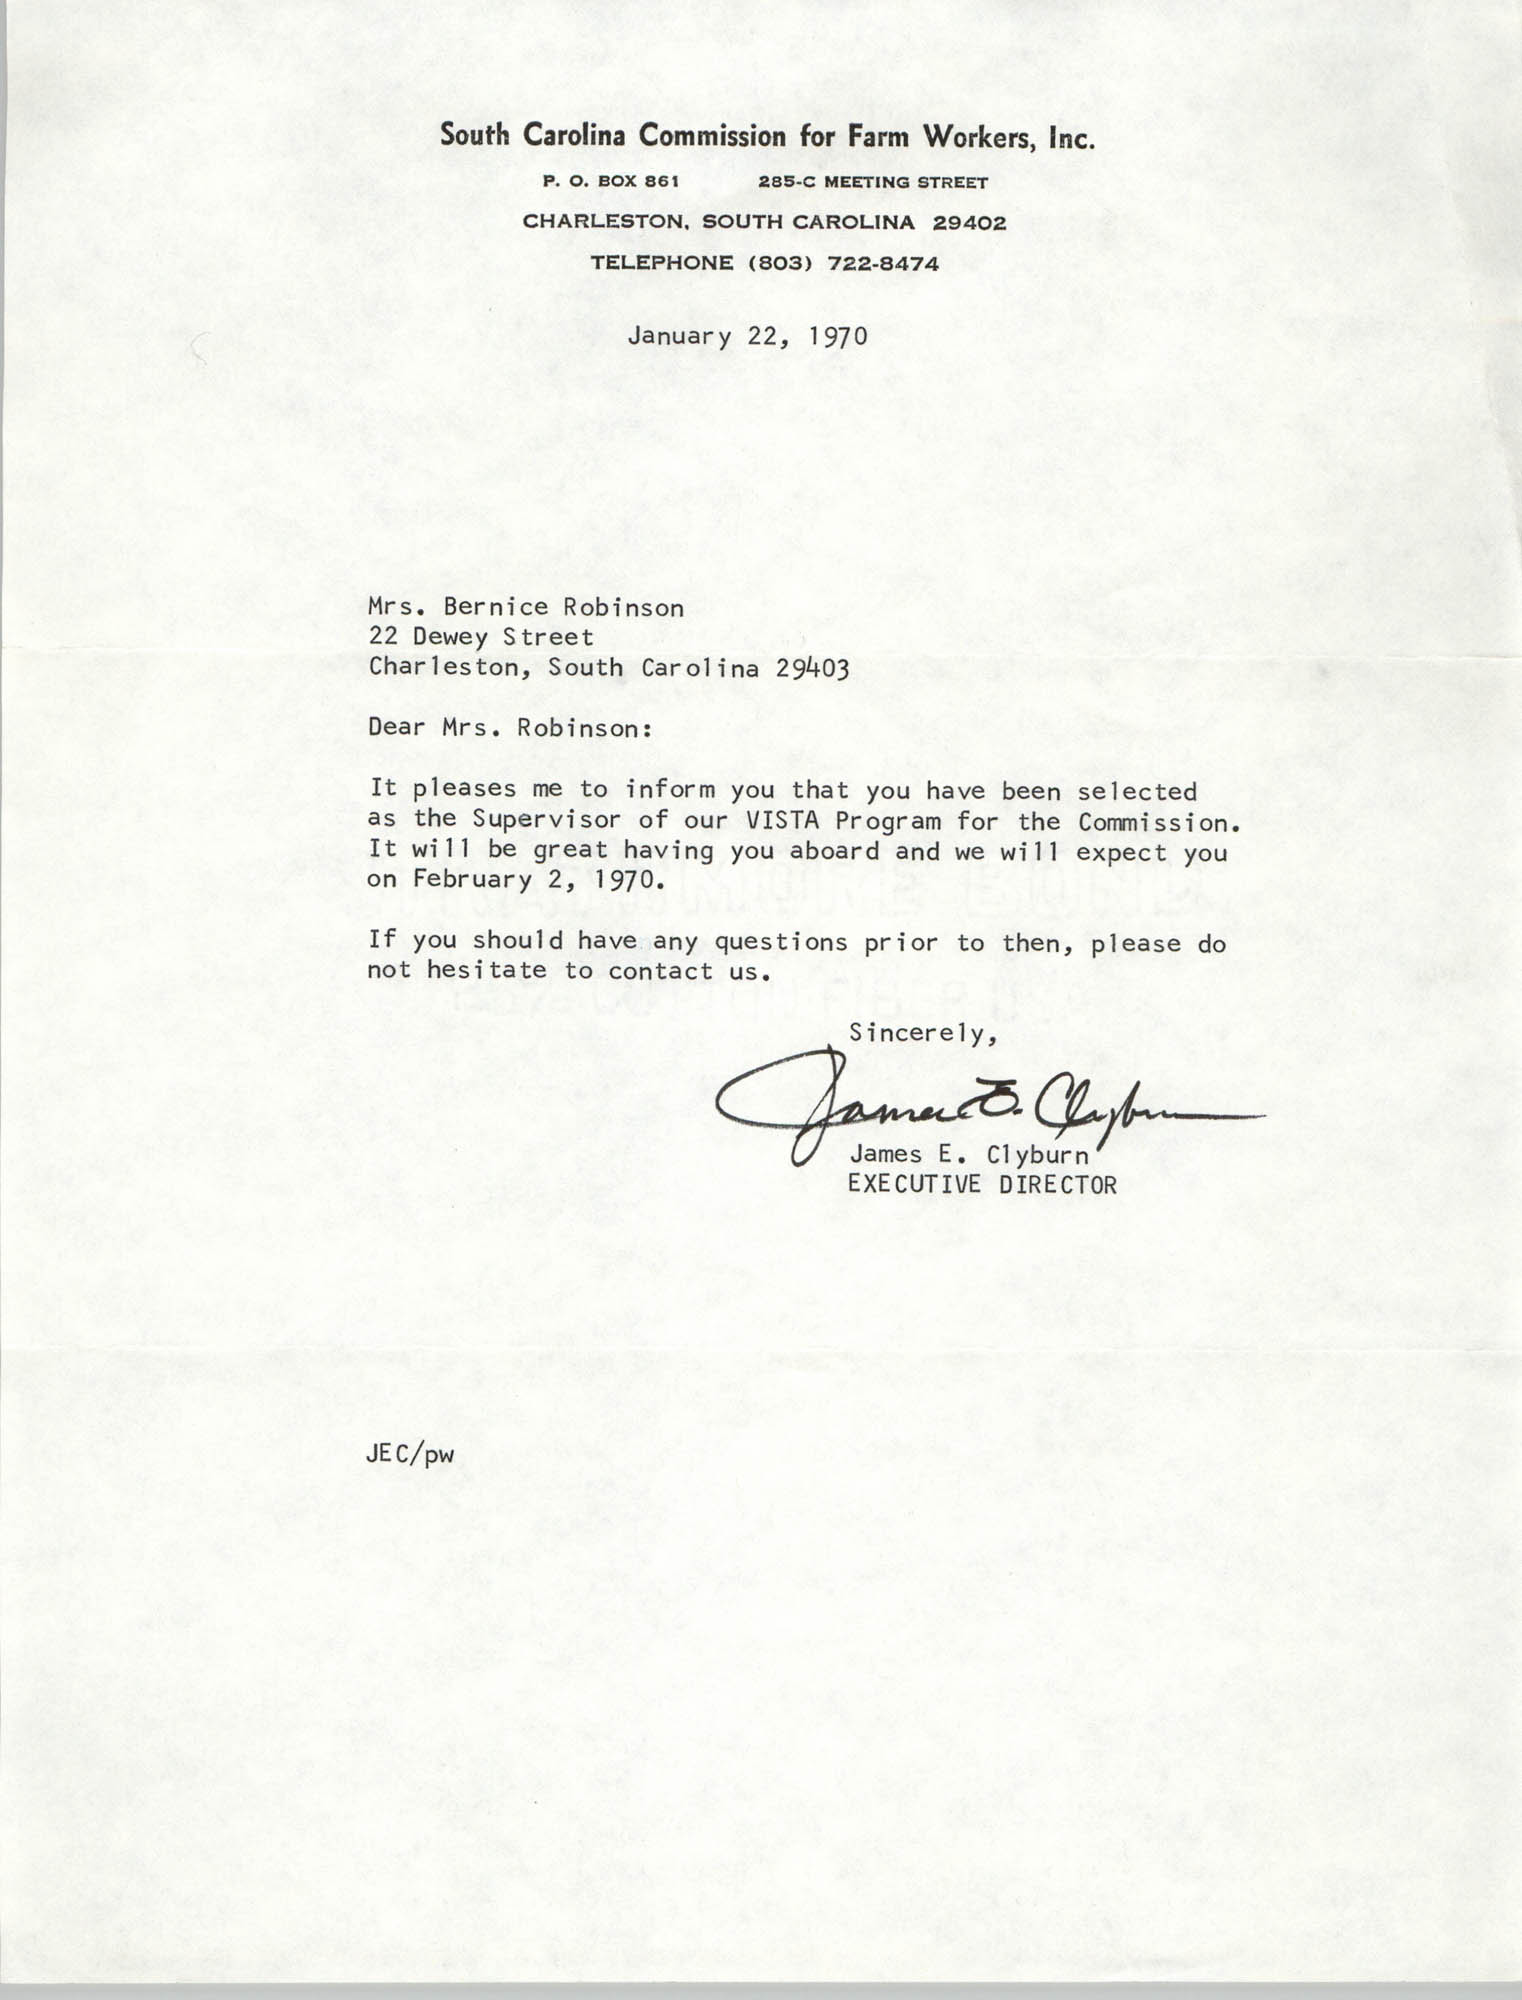 Letter from James E. Clyburn to Bernice Robinson, January 22, 1970